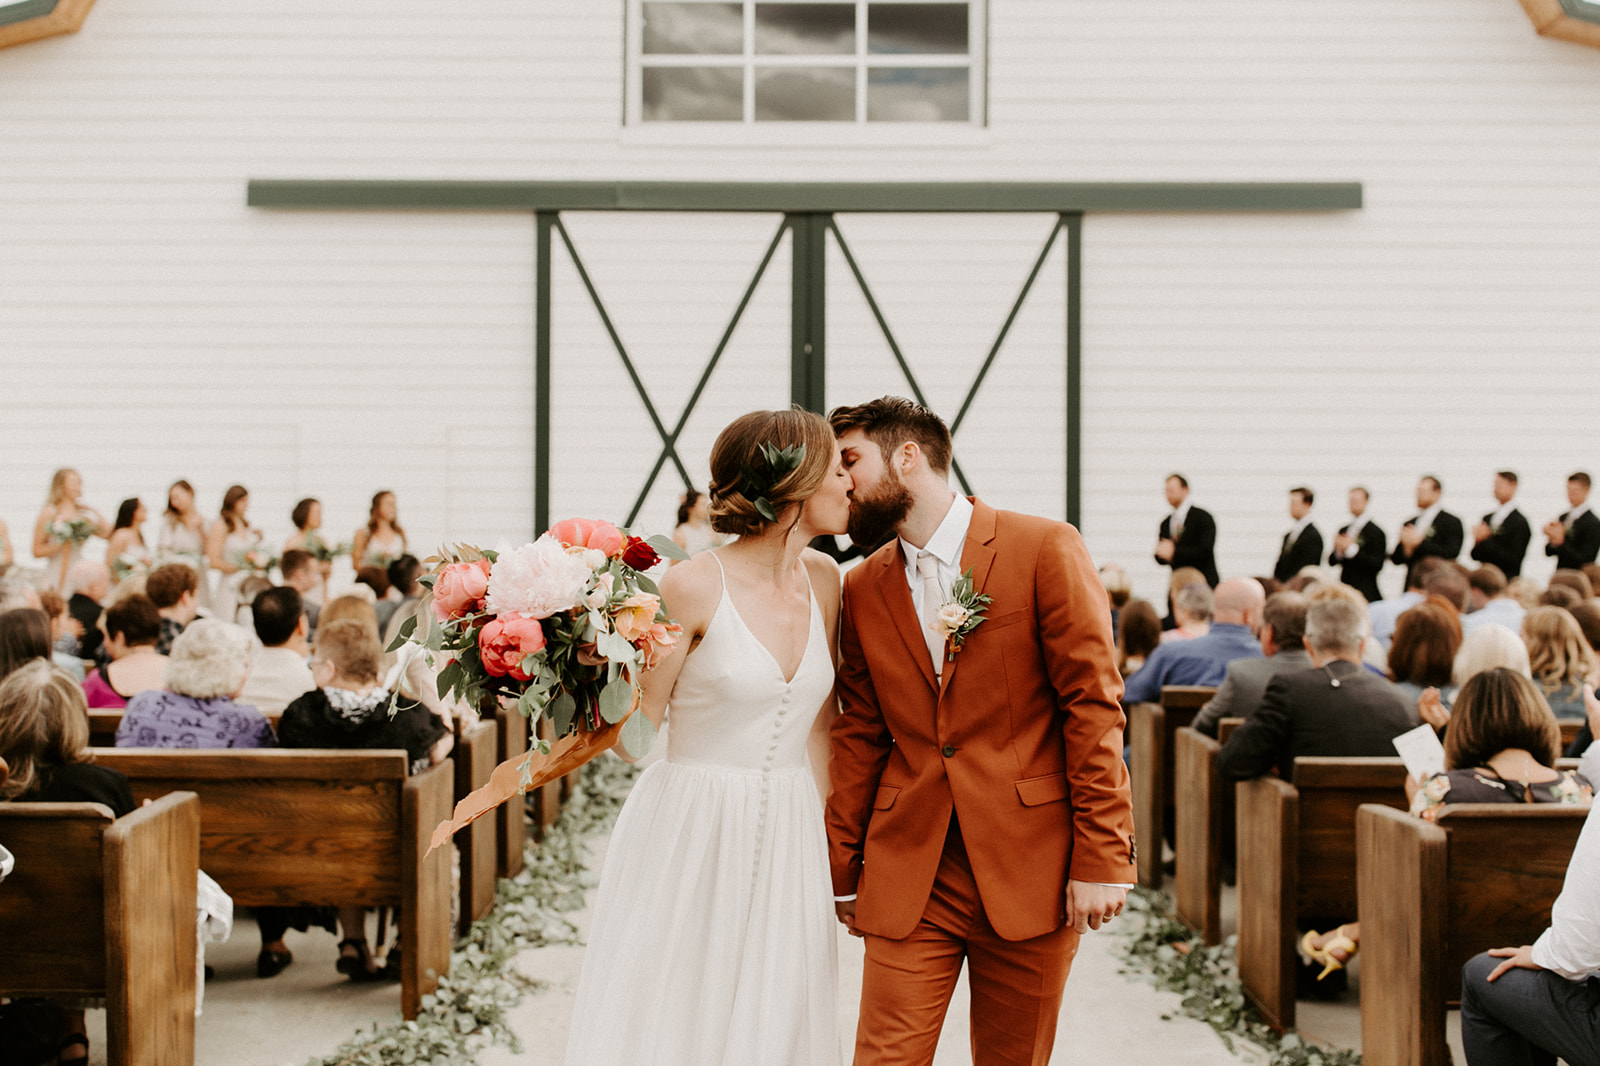 A wedding ceremony at The Butler Barn